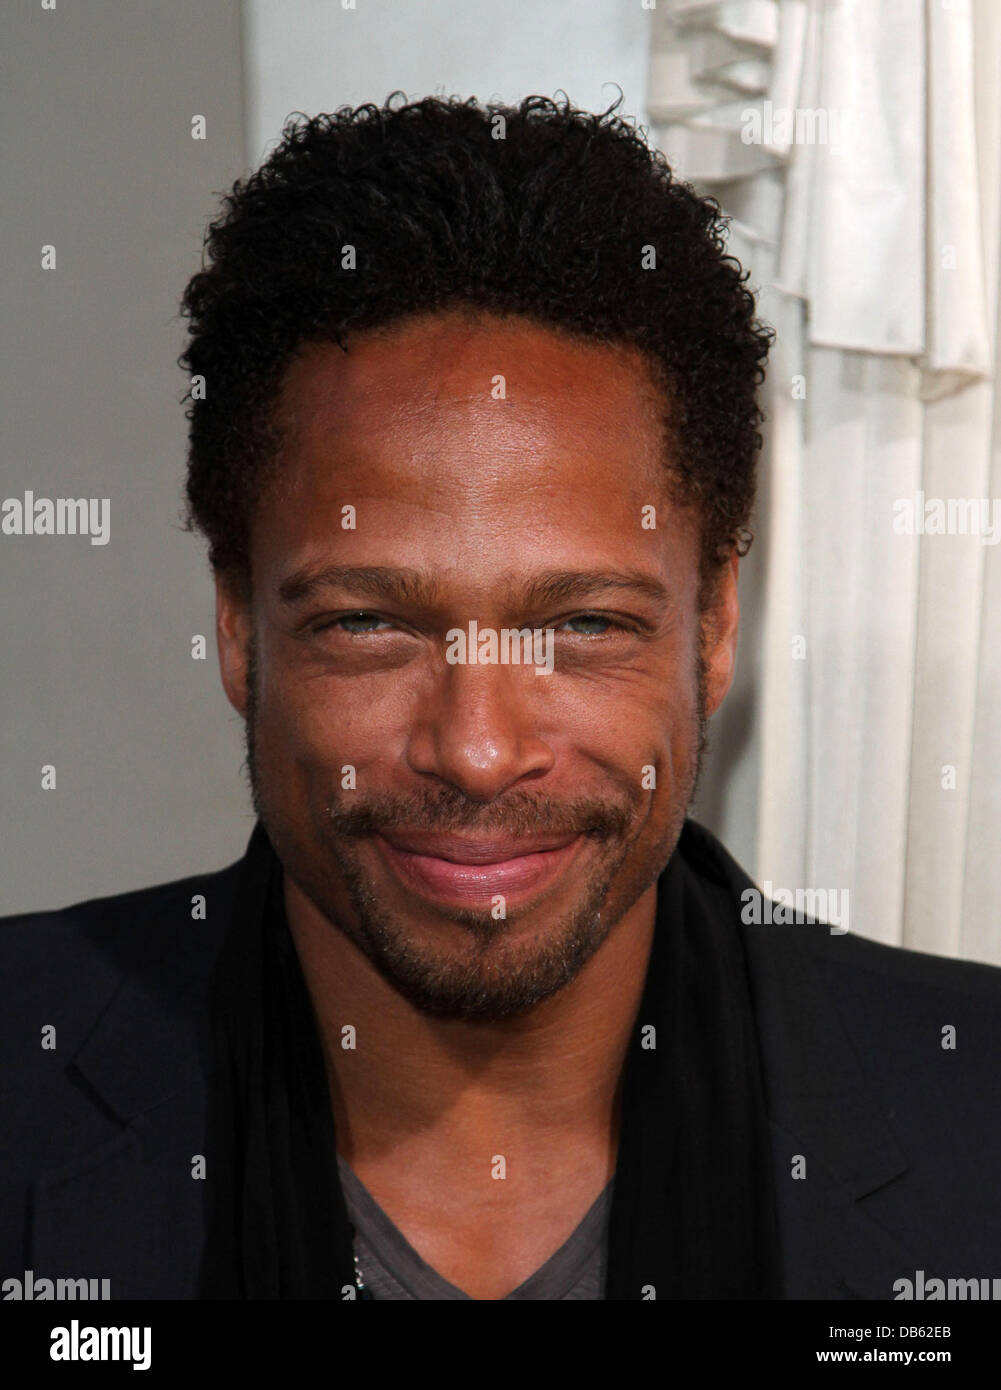 Gary Dourdan Los Angeles Premiere of 'Jumping The Broom' held at ArcLight Cinemas in Hollywood Los Angeles, California Stock Photo